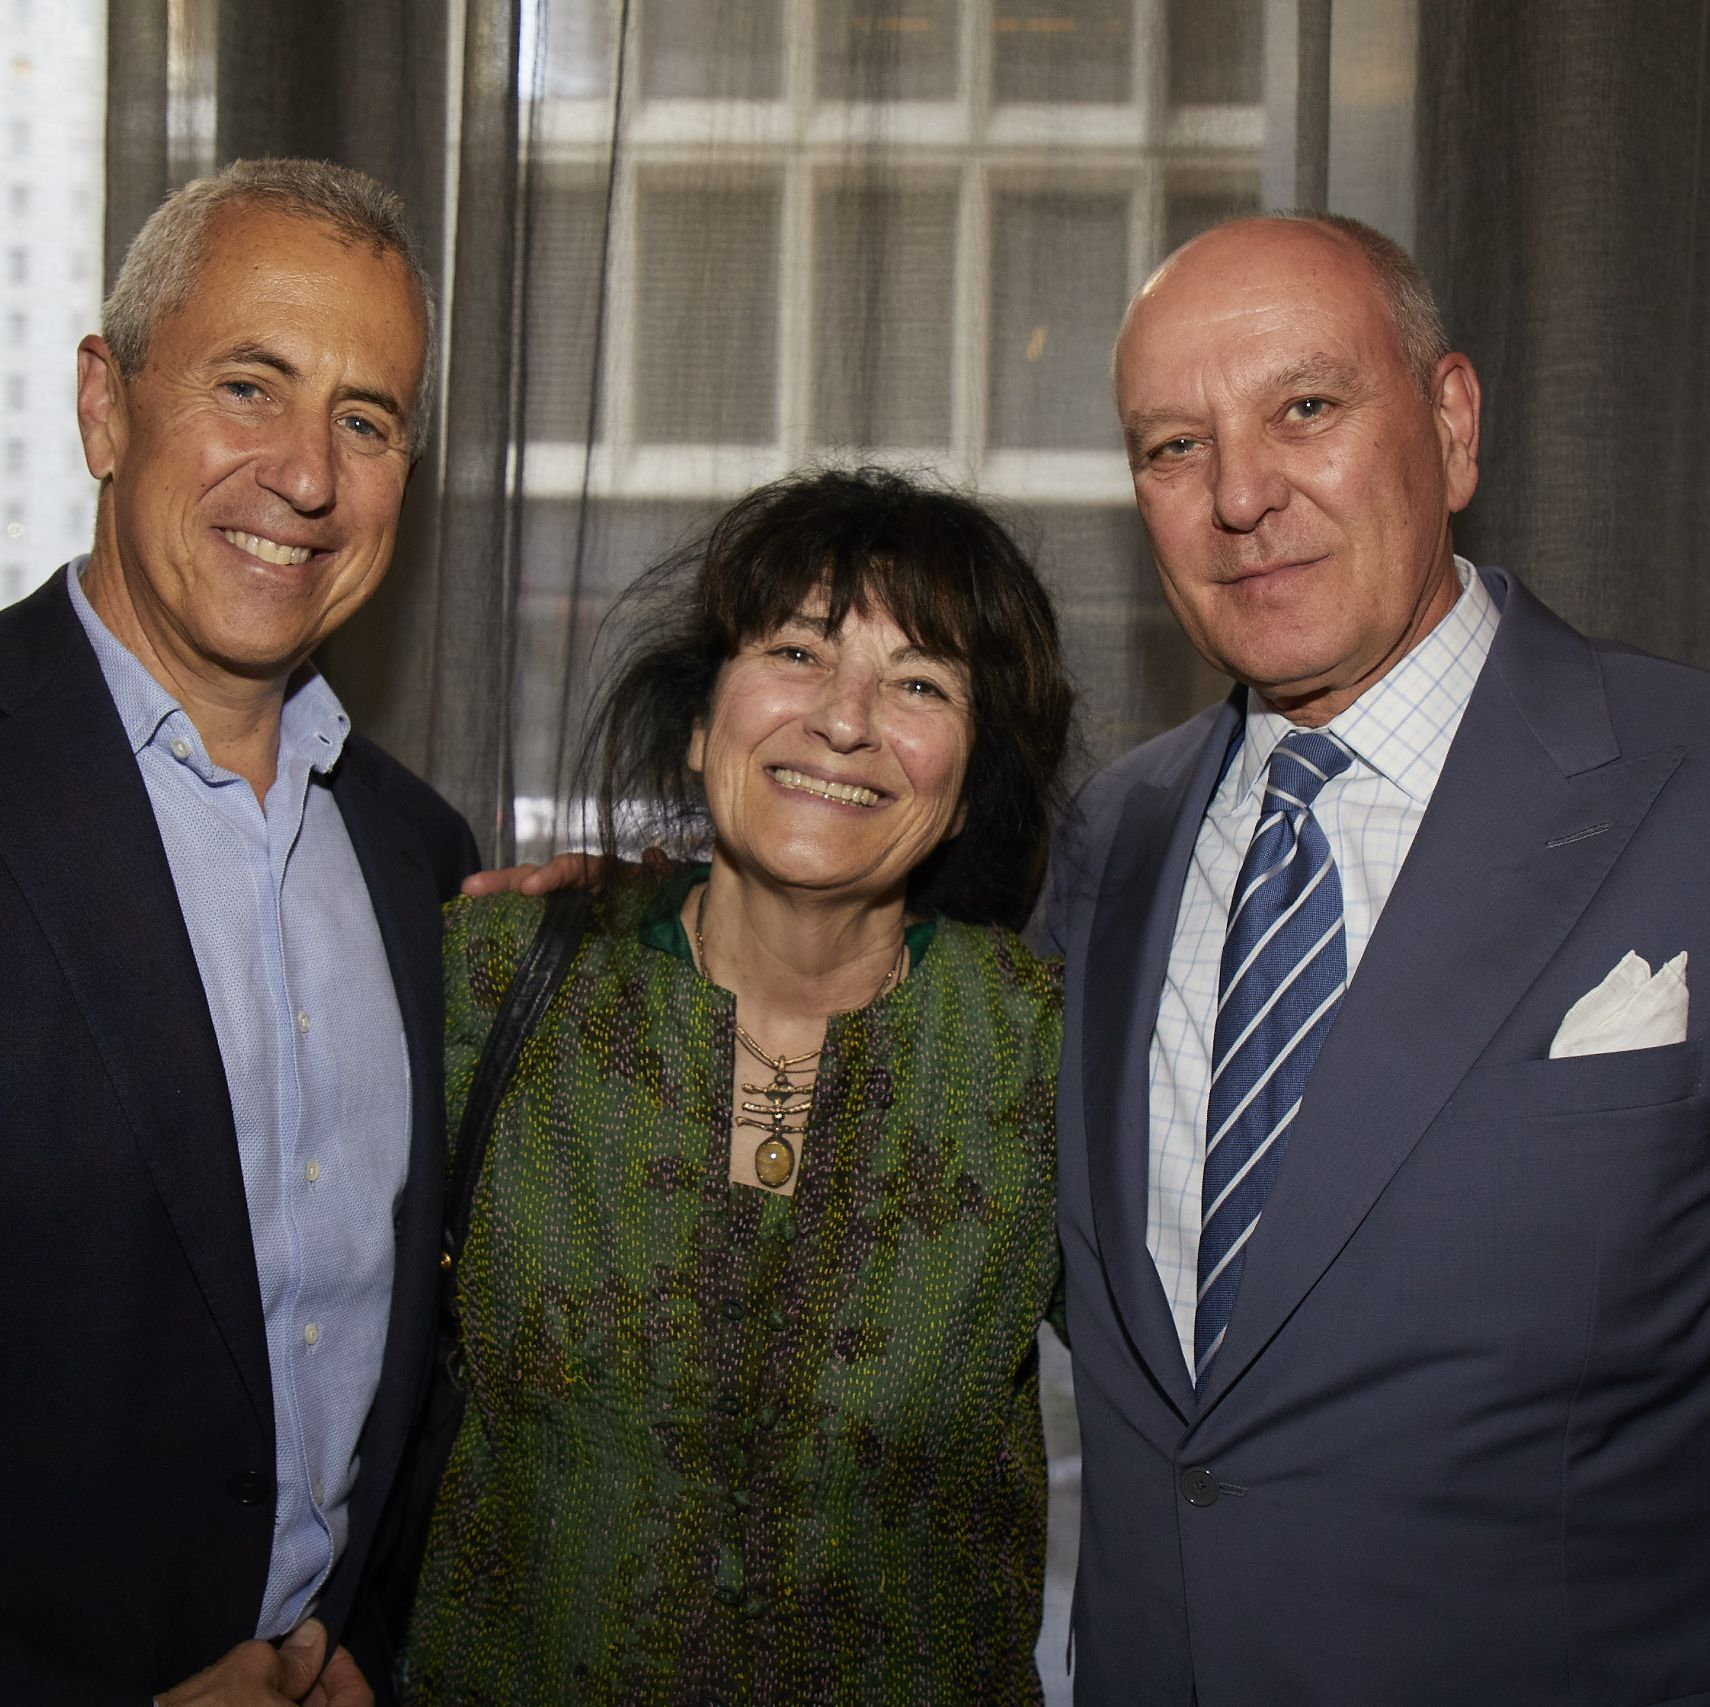 Something was cooking at the Four Seasons Restaurant in Manhattan on May 21, and it wasn't just in the kitchen. That evening, Town & Country editor in chief Stellene Volandes hosted a party in honor of T&C contributing editor Ruth Reichl and her latest book, Save Me the Plums .